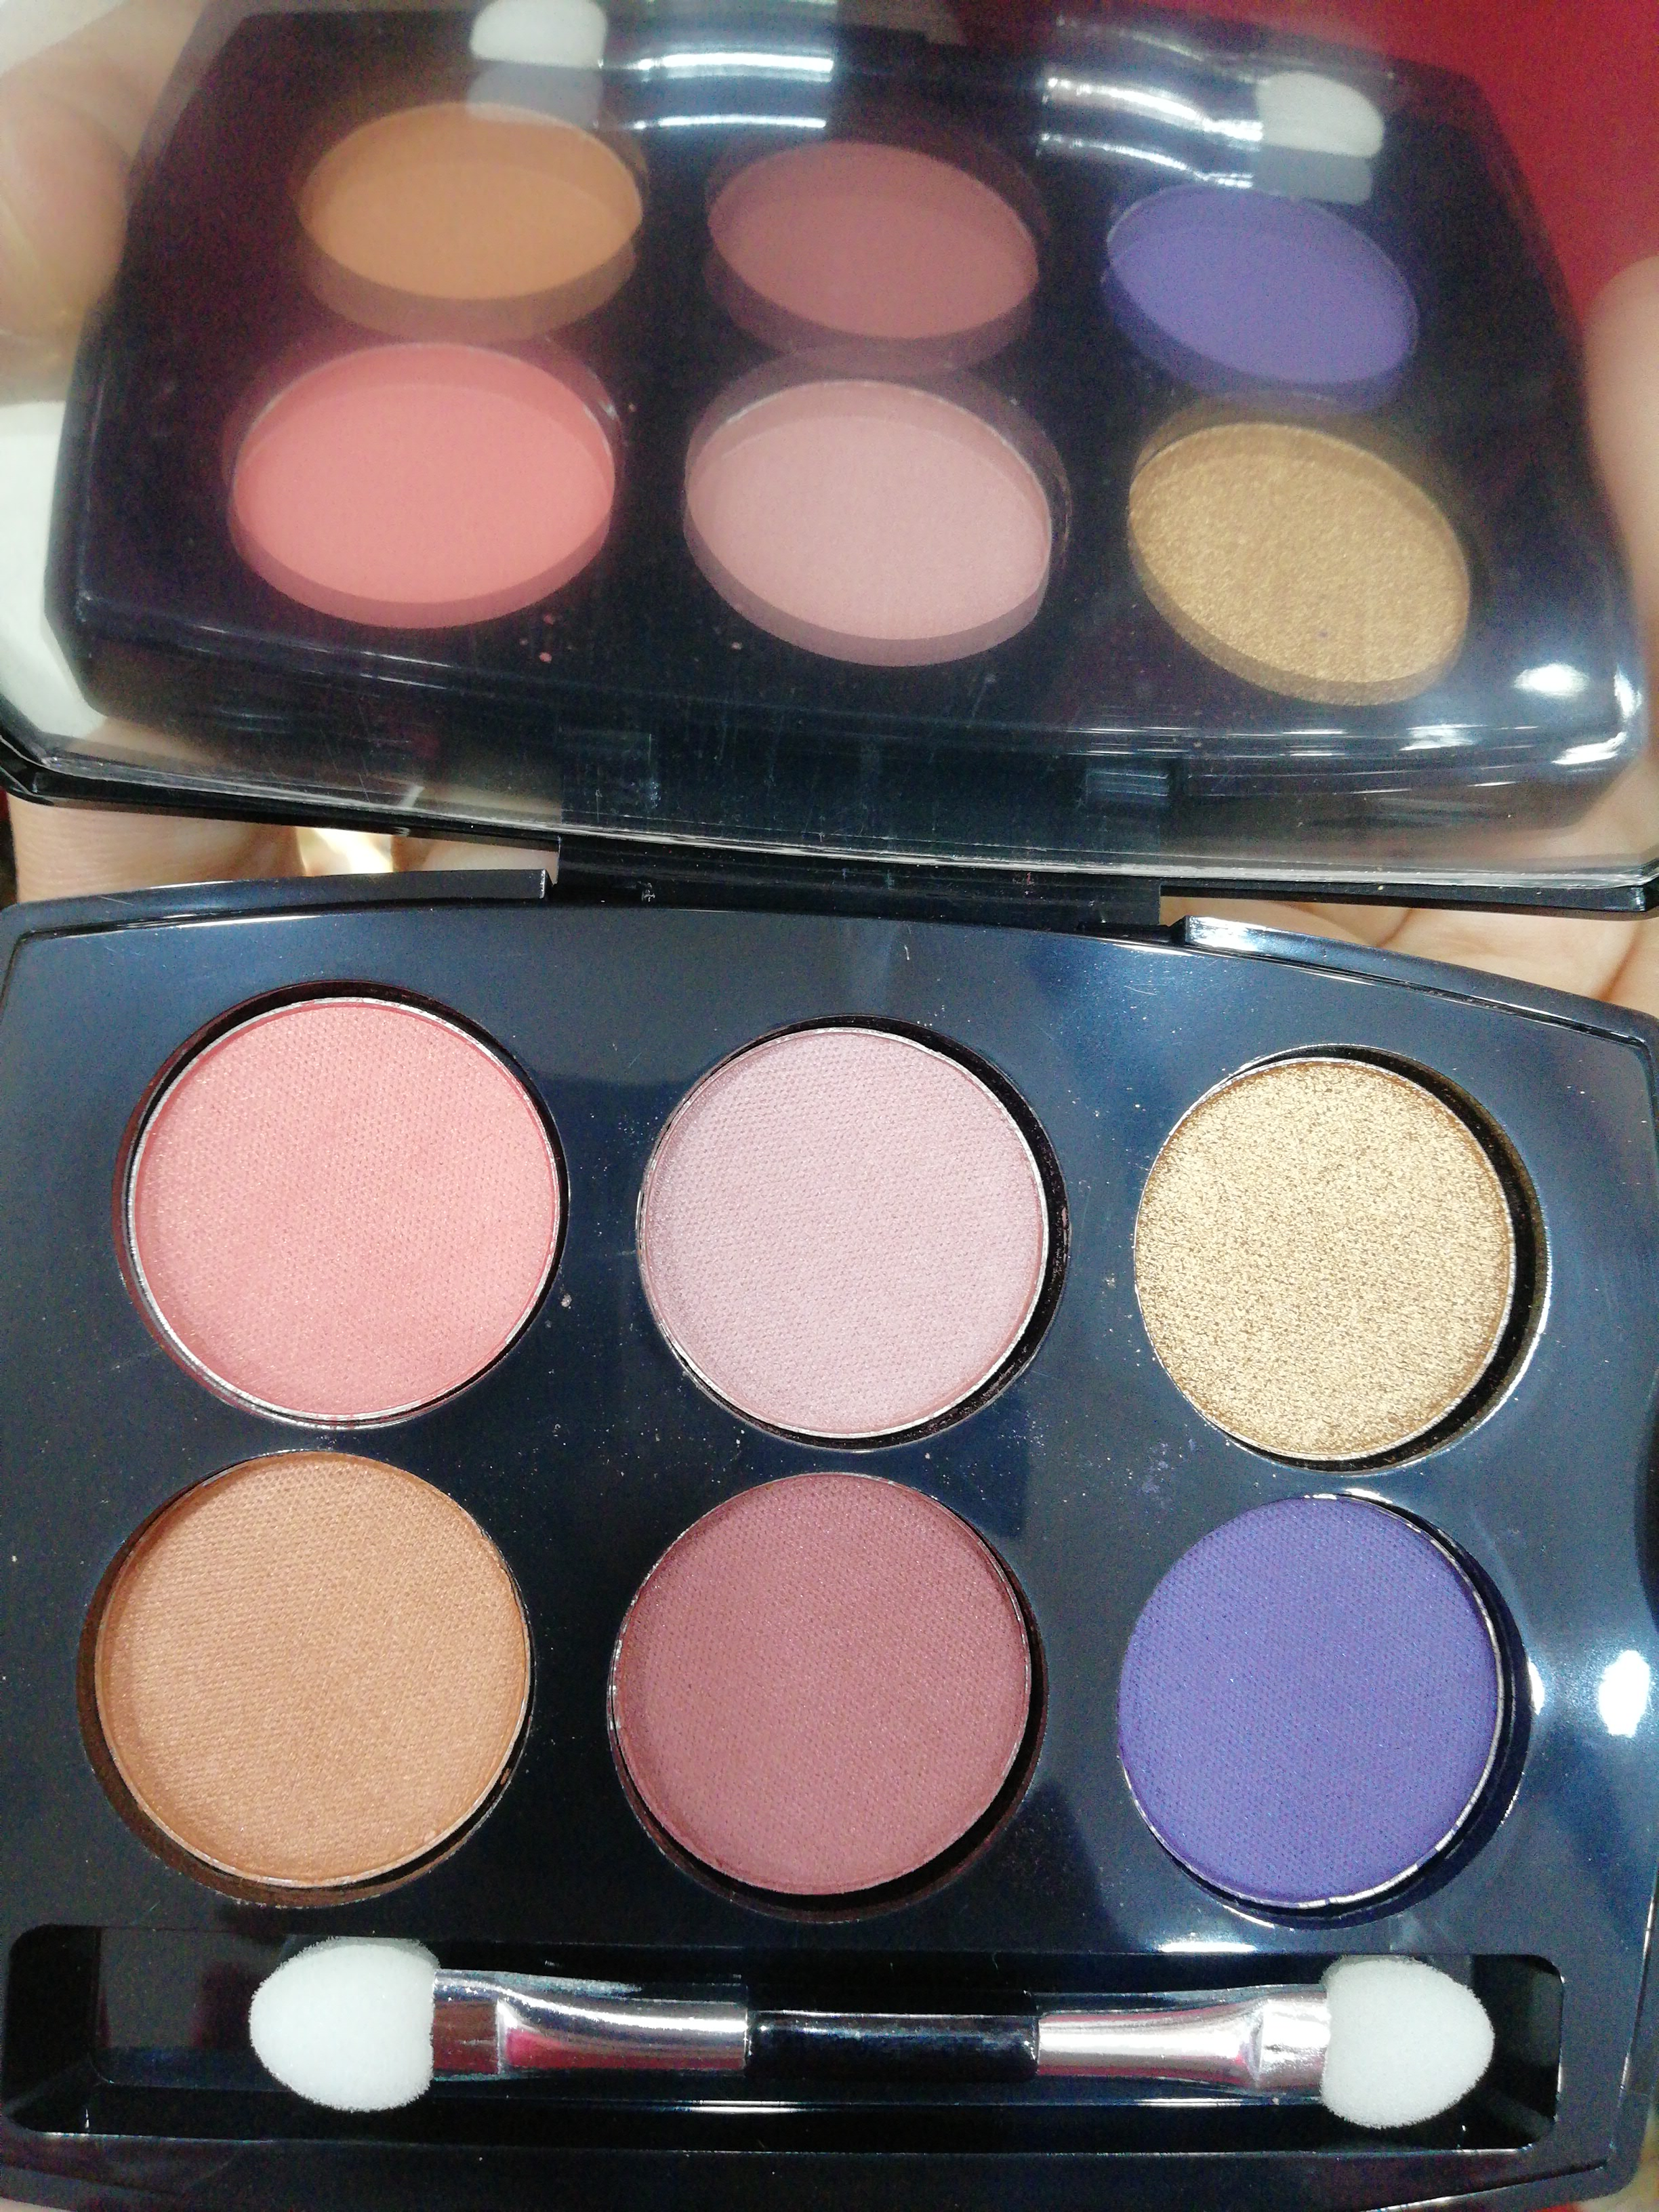 Lakme Absolute Illuminating Eyeshadow Palette-Lovely shades-By ragini_dhiman-2